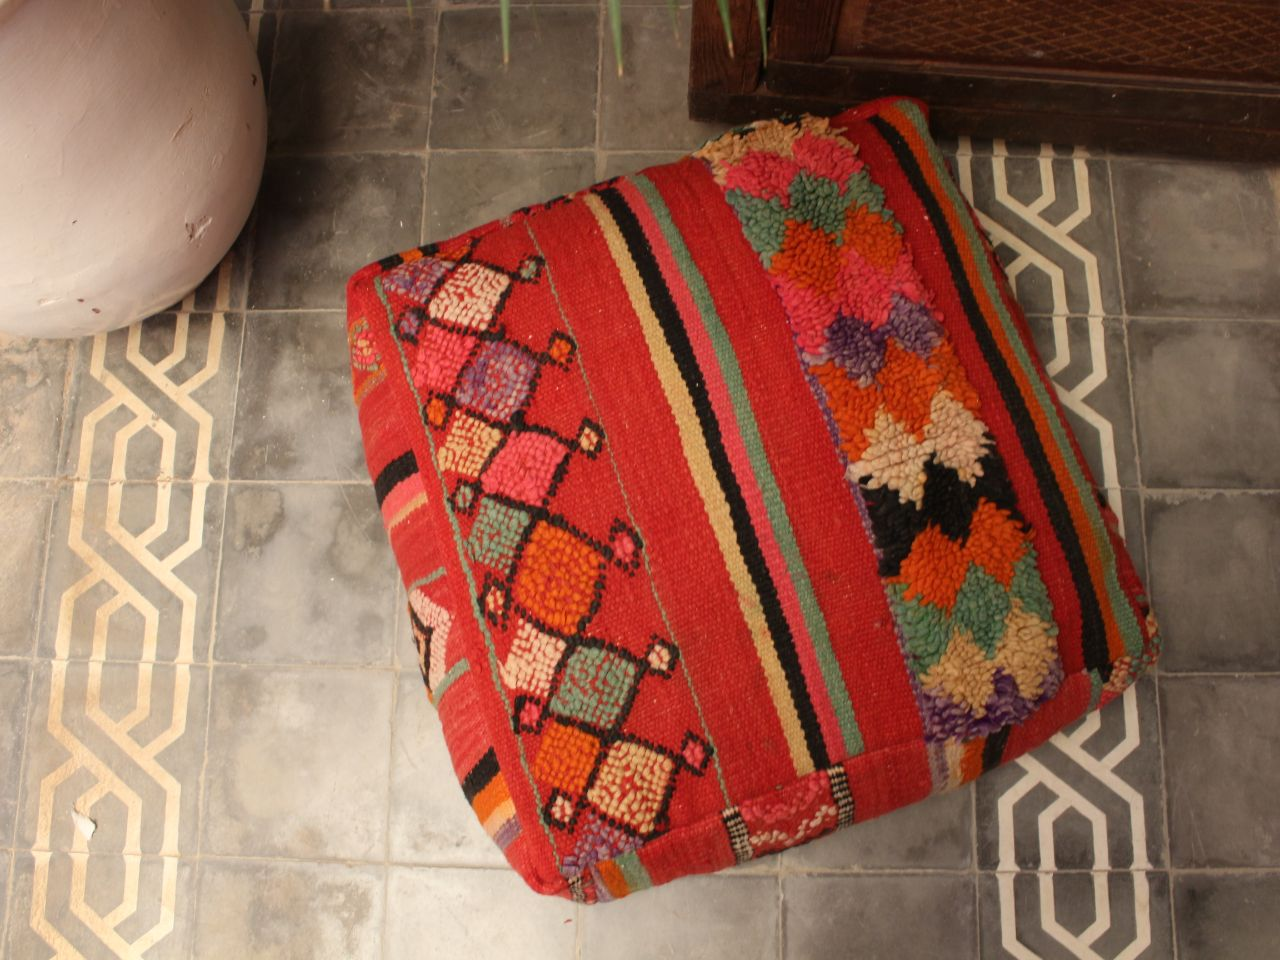 Vintage carpet pouf.